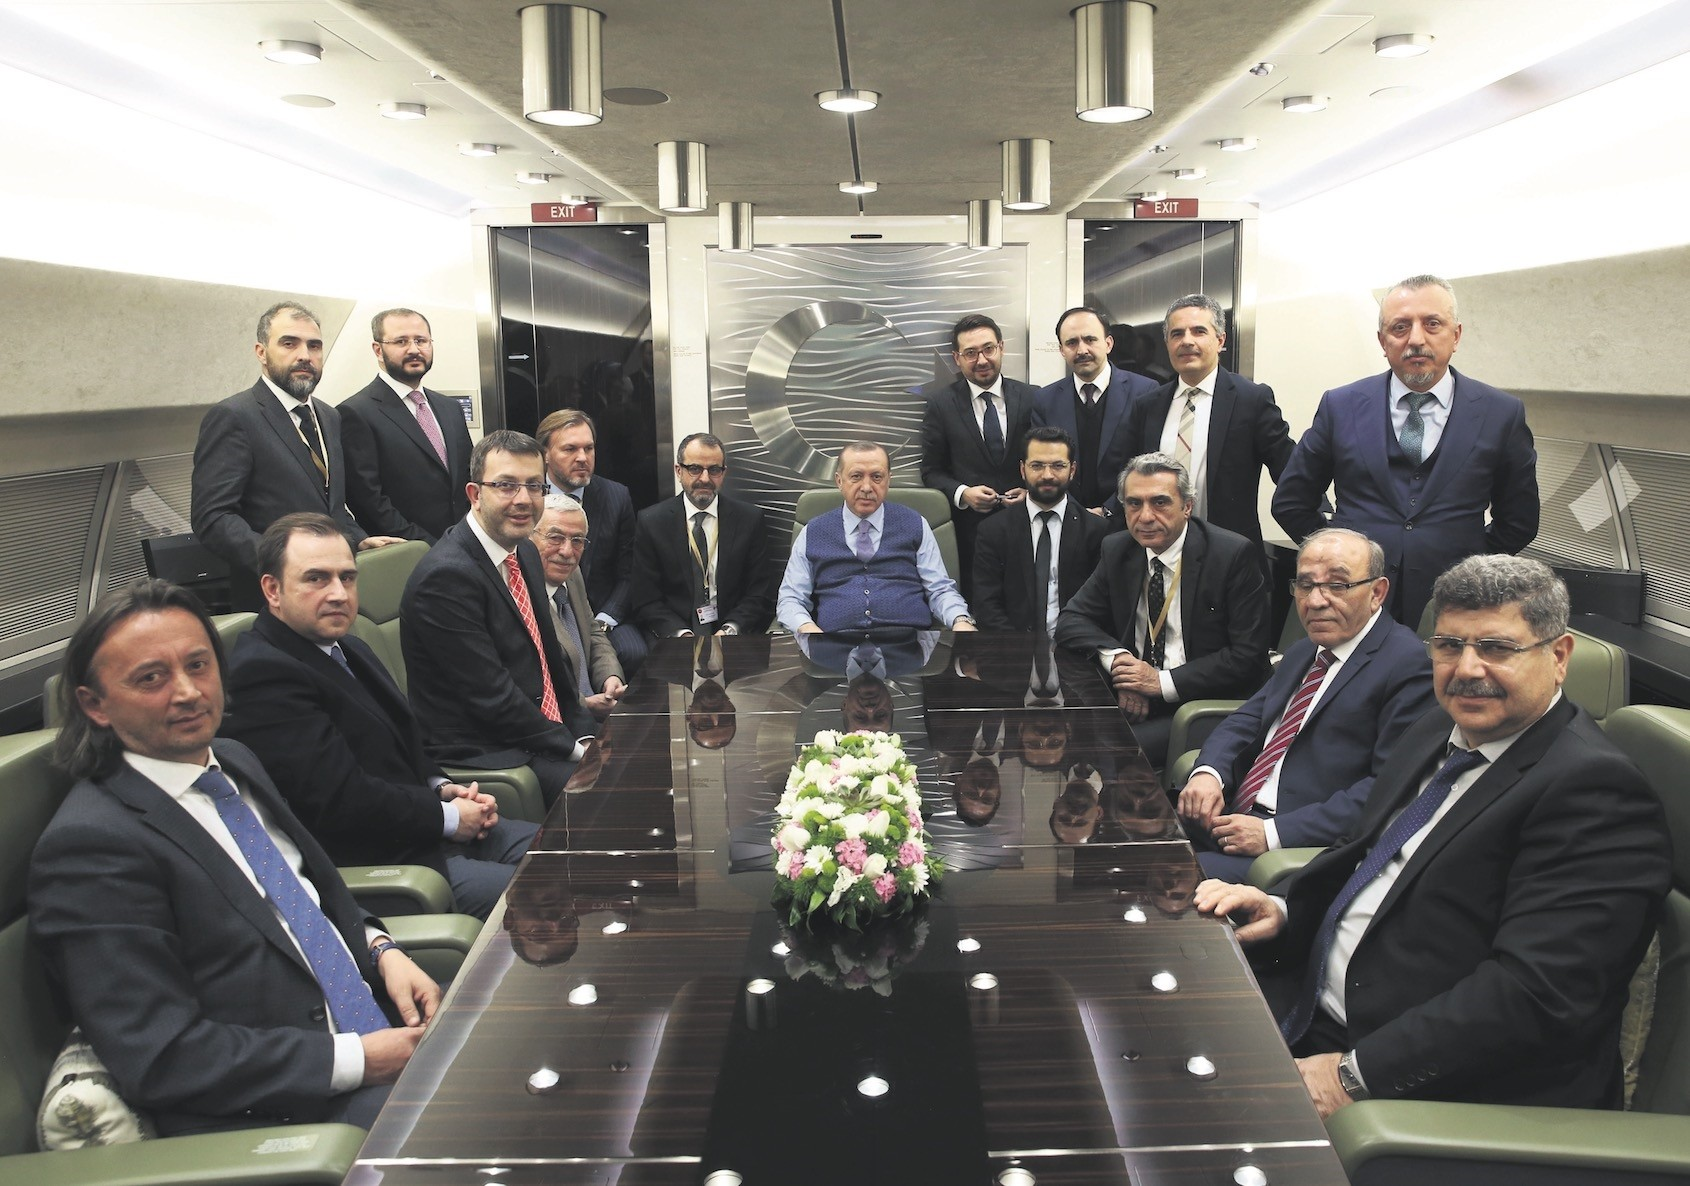 Opposing White Houseu2019s decision on Jerusalem, President Erdou011fan has said that Jerusalem is a u201cred line for Turkey and the Muslim world.u201d